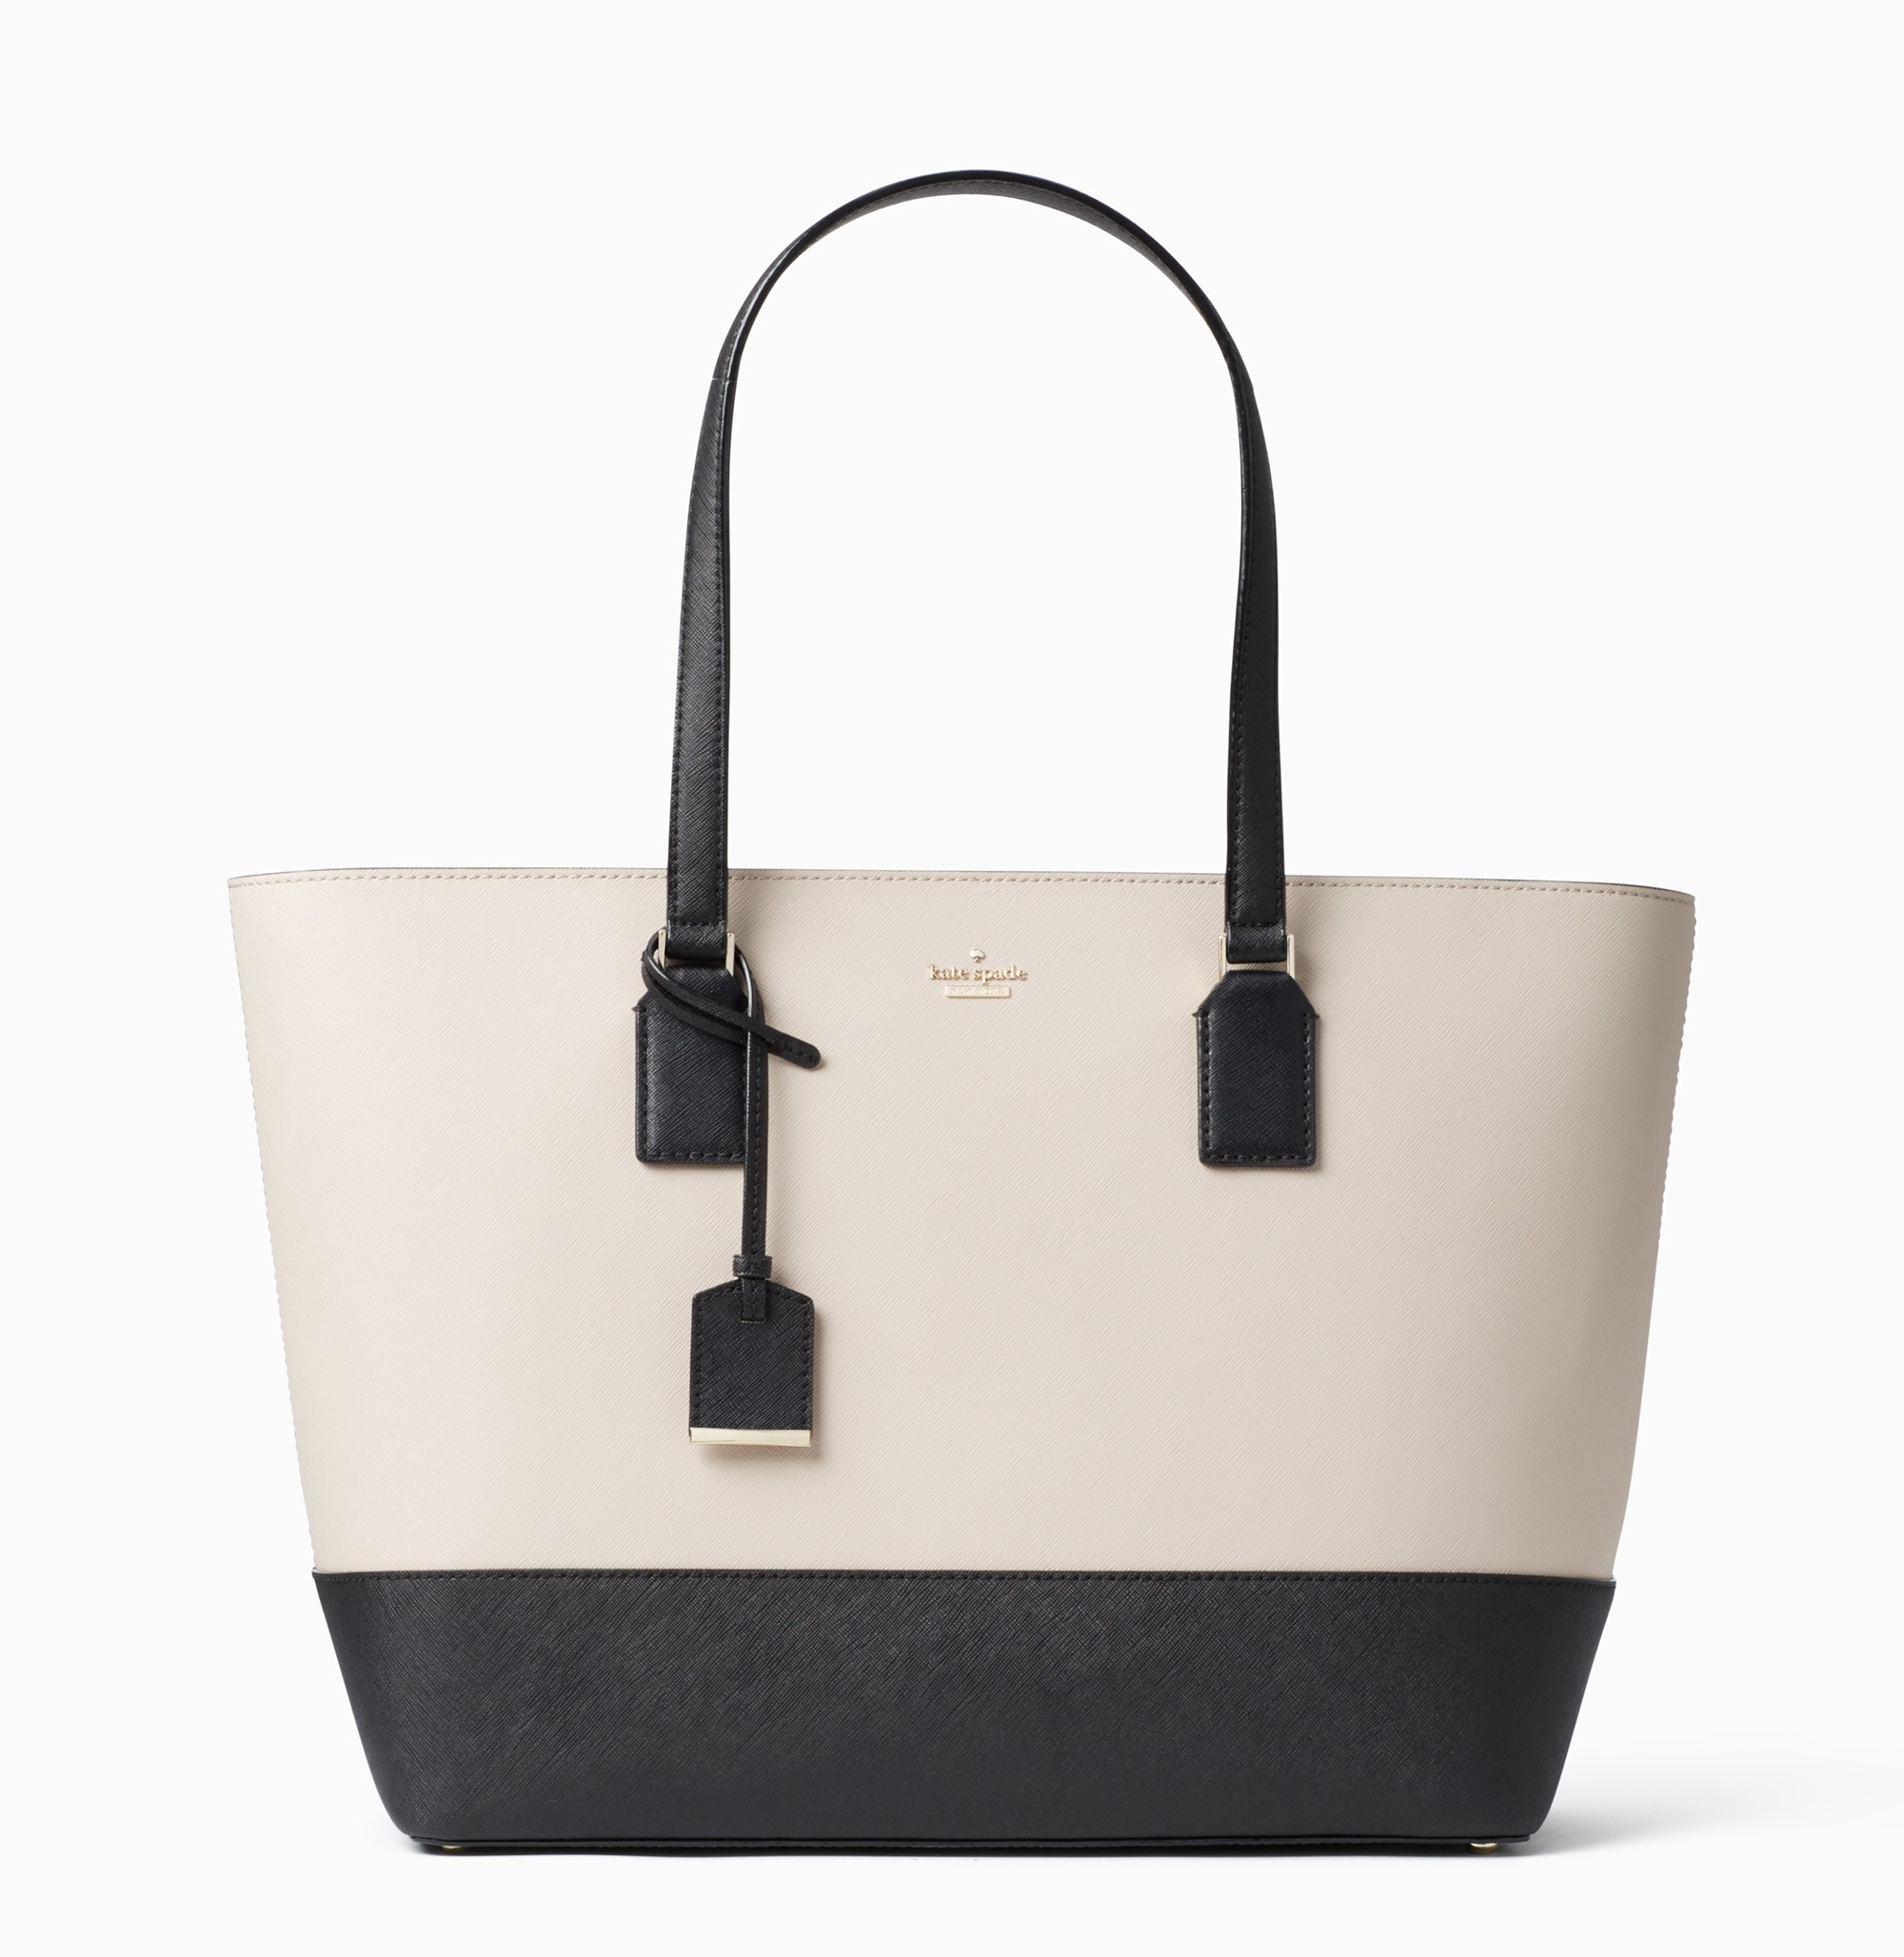 Cameron Street Medium Harmony Kate Spade - Kate Spade never has a dull moment. This tote comes in 5 other colors and is $298.